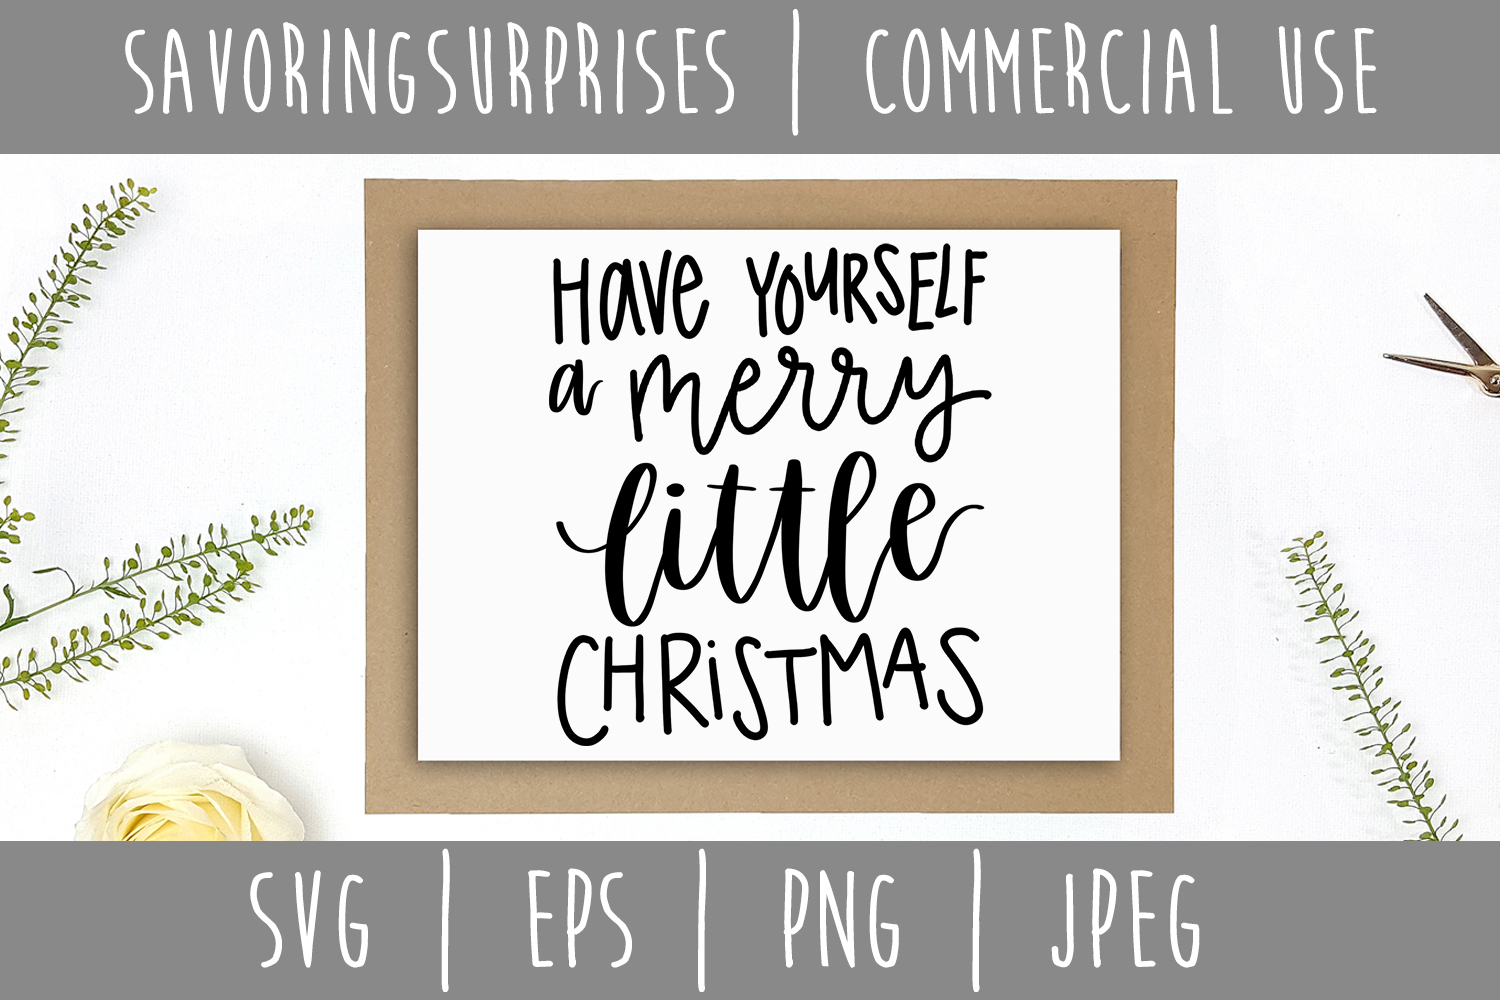 Have Yourself A Merry Little Christmas Svg.Have Yourself A Merry Little Christmas Svg